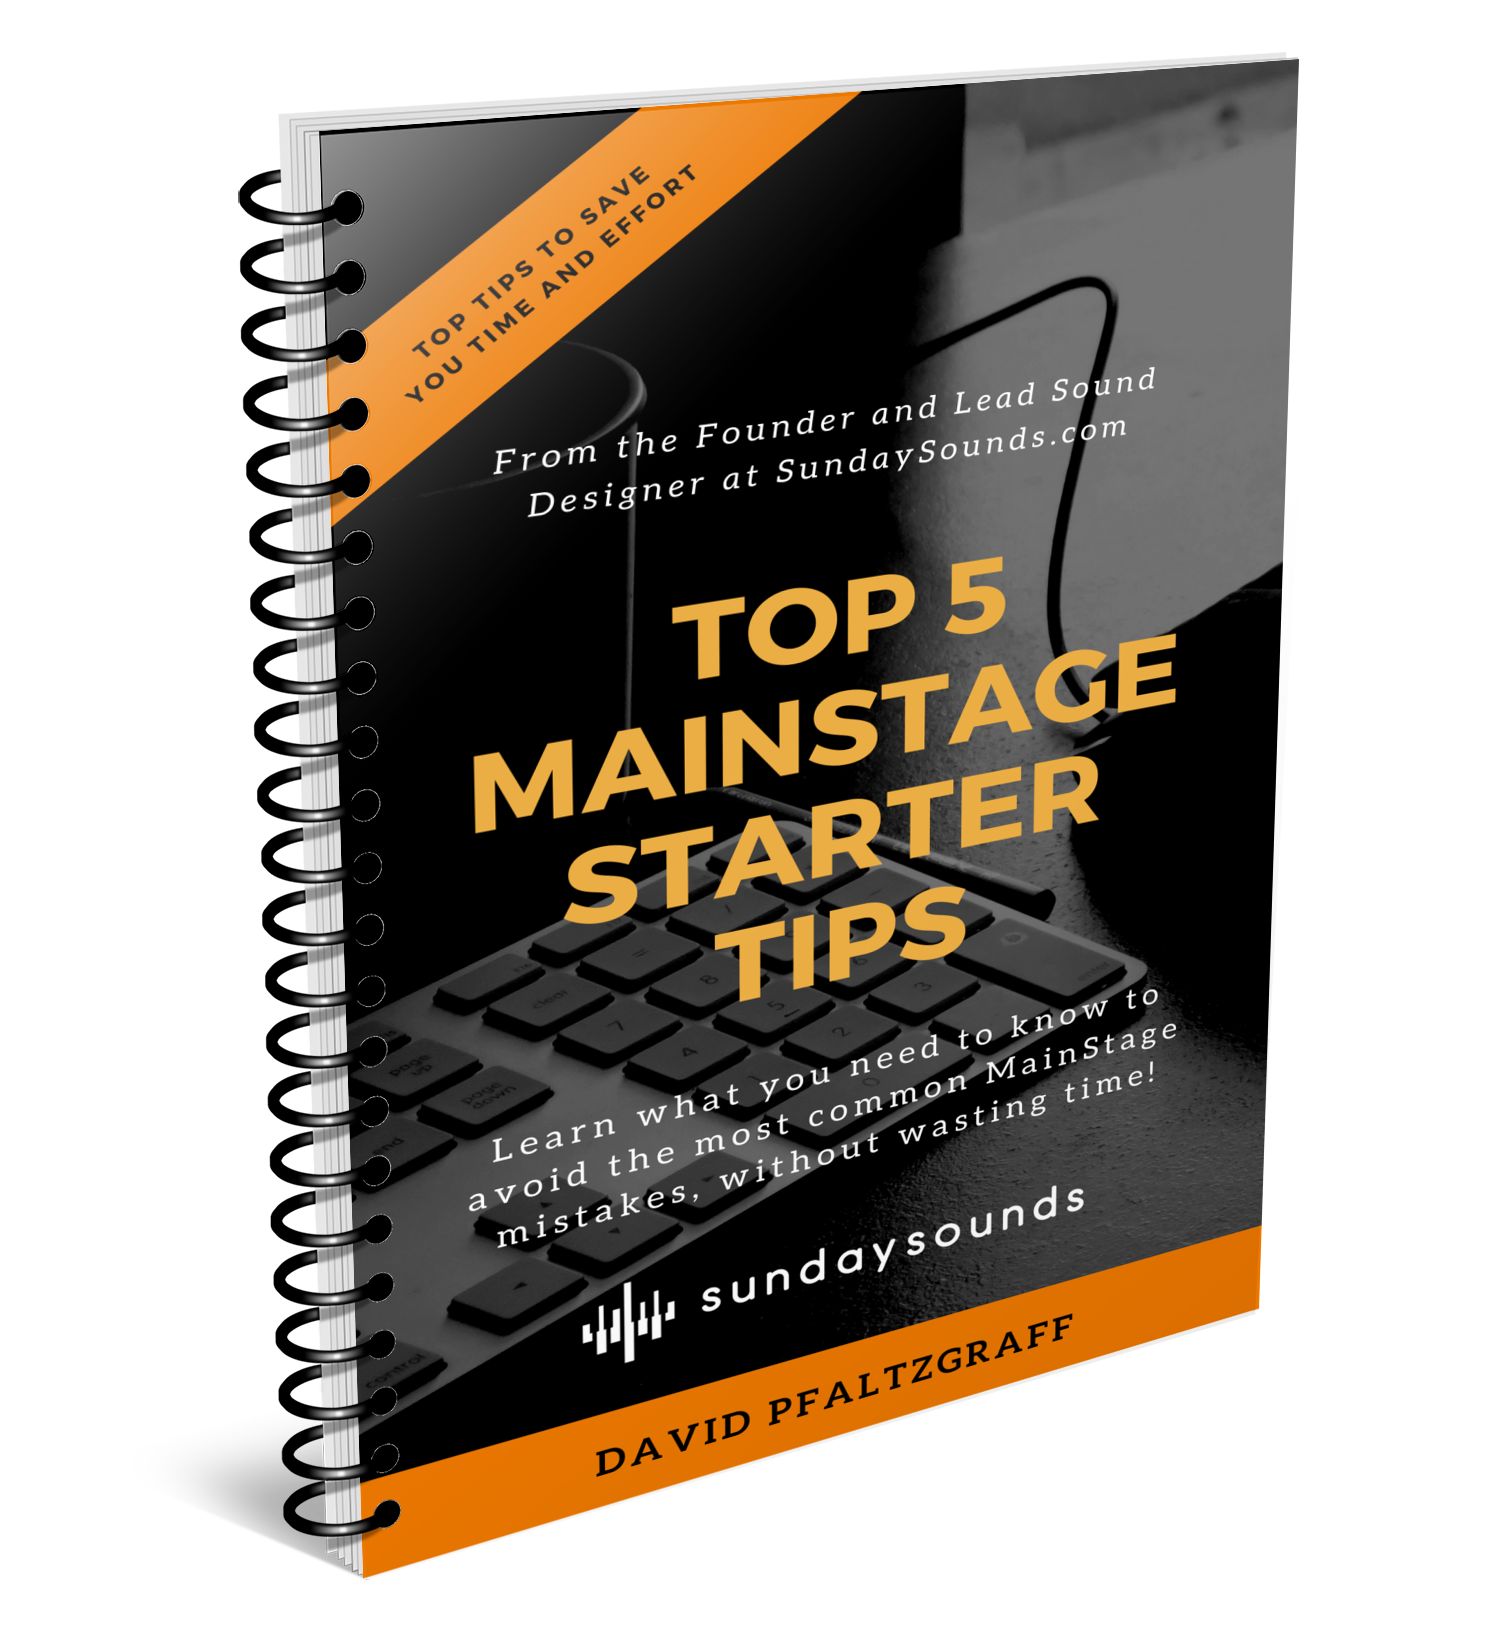 TOP 5 MAINSTAGE STARTER TIPS - In this E-Book written by David Pfaltzgraff you'll learn the top 5 things David thinks every new MainStage user should know. This E-Book is 100% free!